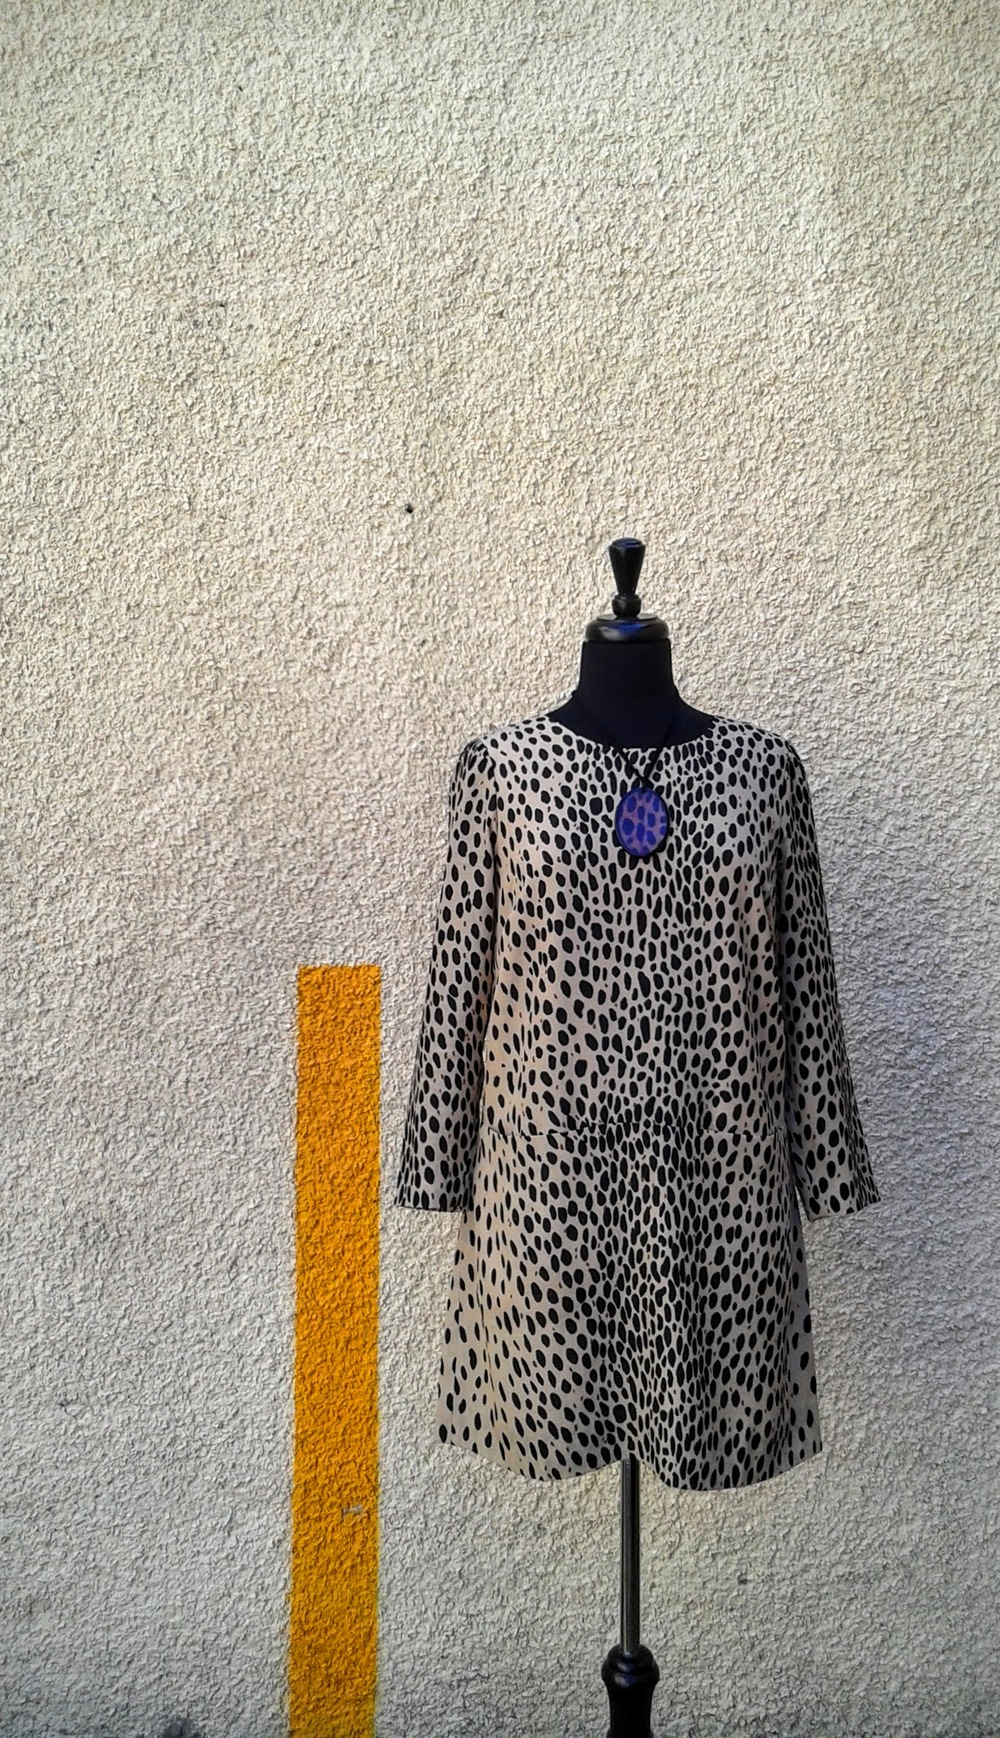 J Crew dress (NWT); Size S, $36; Necklace, $14